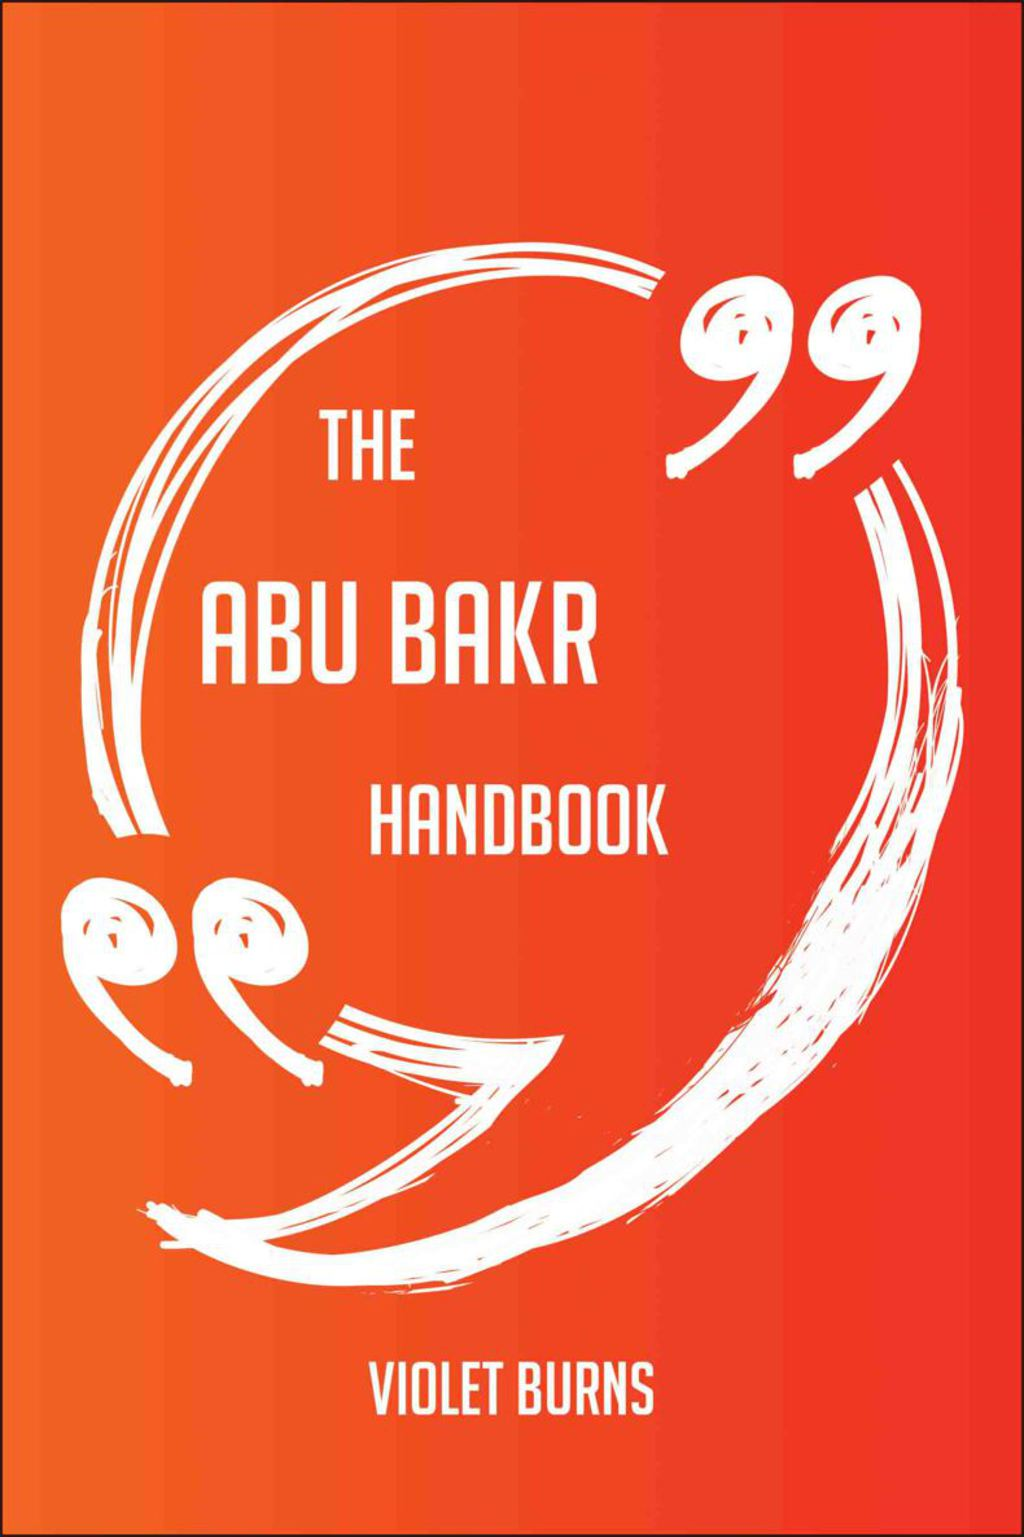 The Abu Bakr Handbook - Everything You Need To Know About Abu Bakr (ebook)